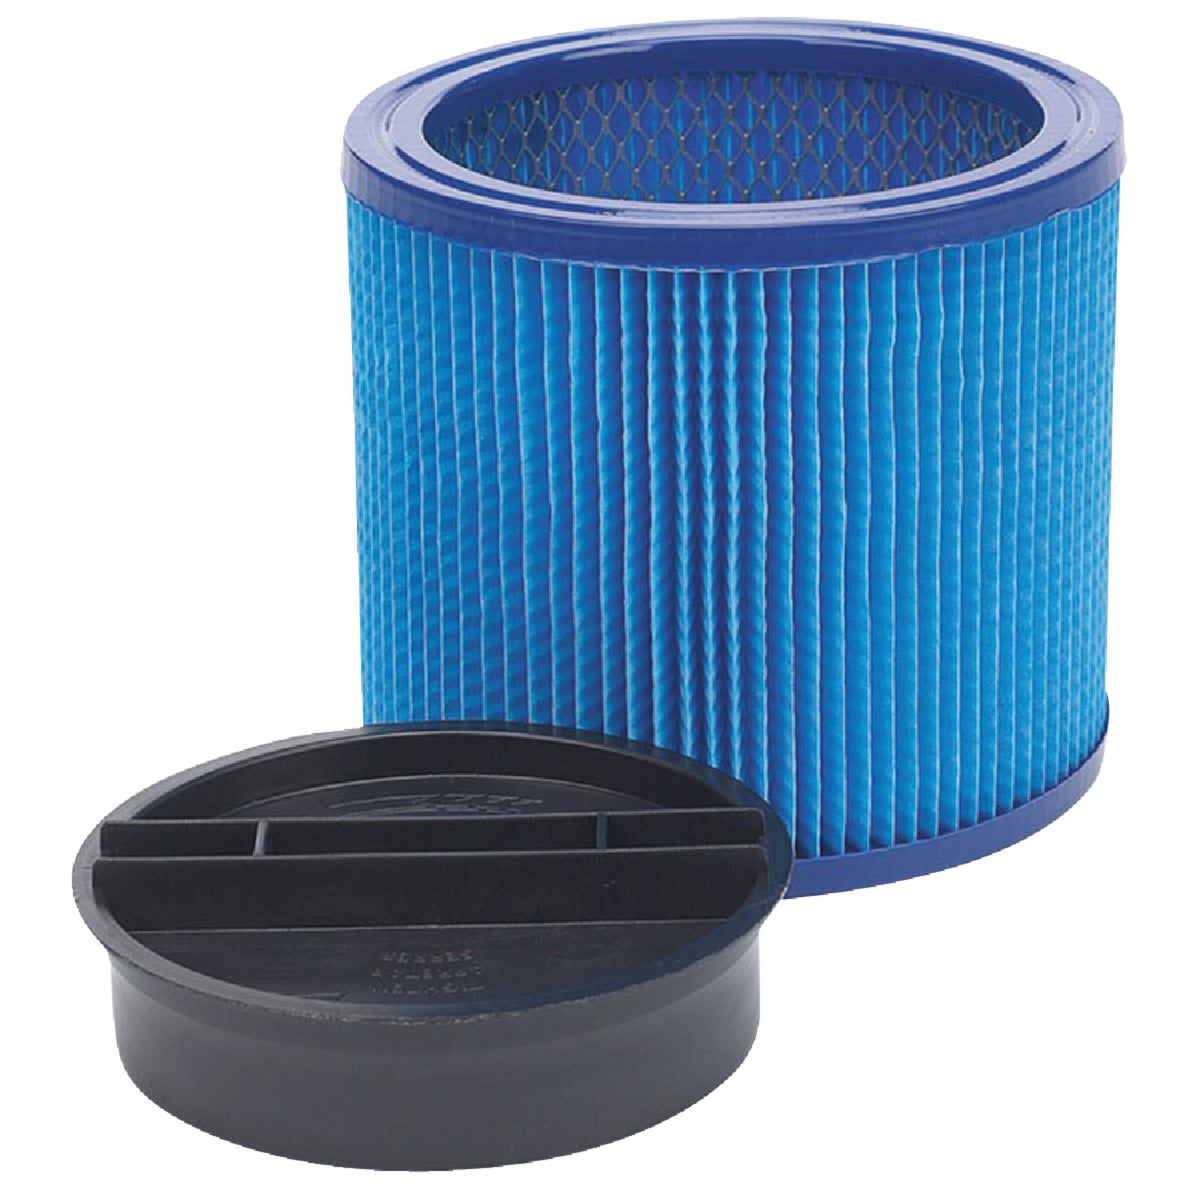 ULTRA CARTRIDGE FILTER - 9035000 by Shop Vac Corp